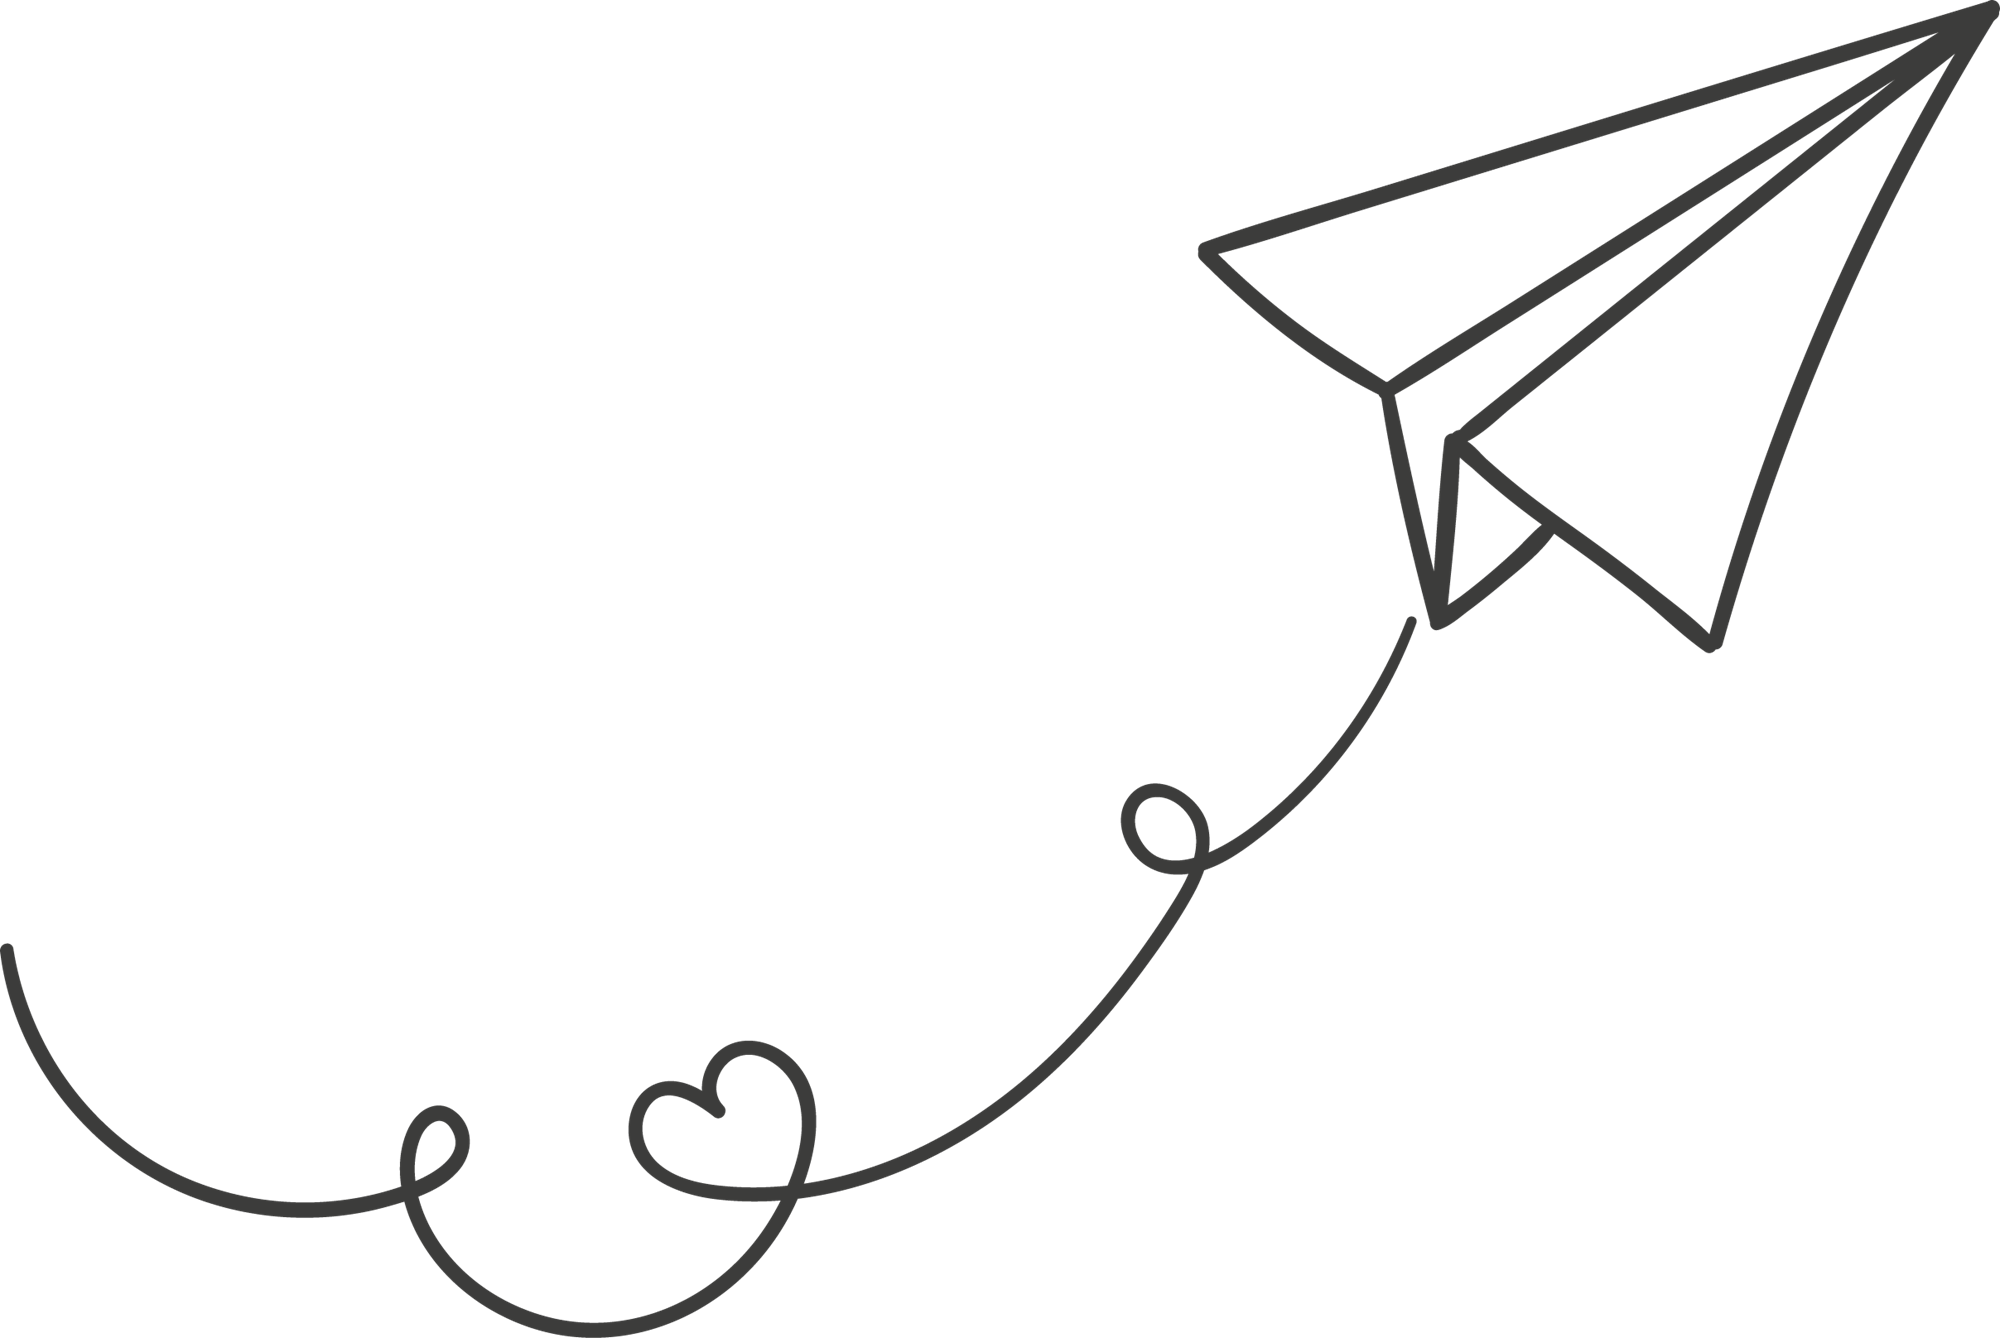 Plane png image purepng. Paper clipart black and white